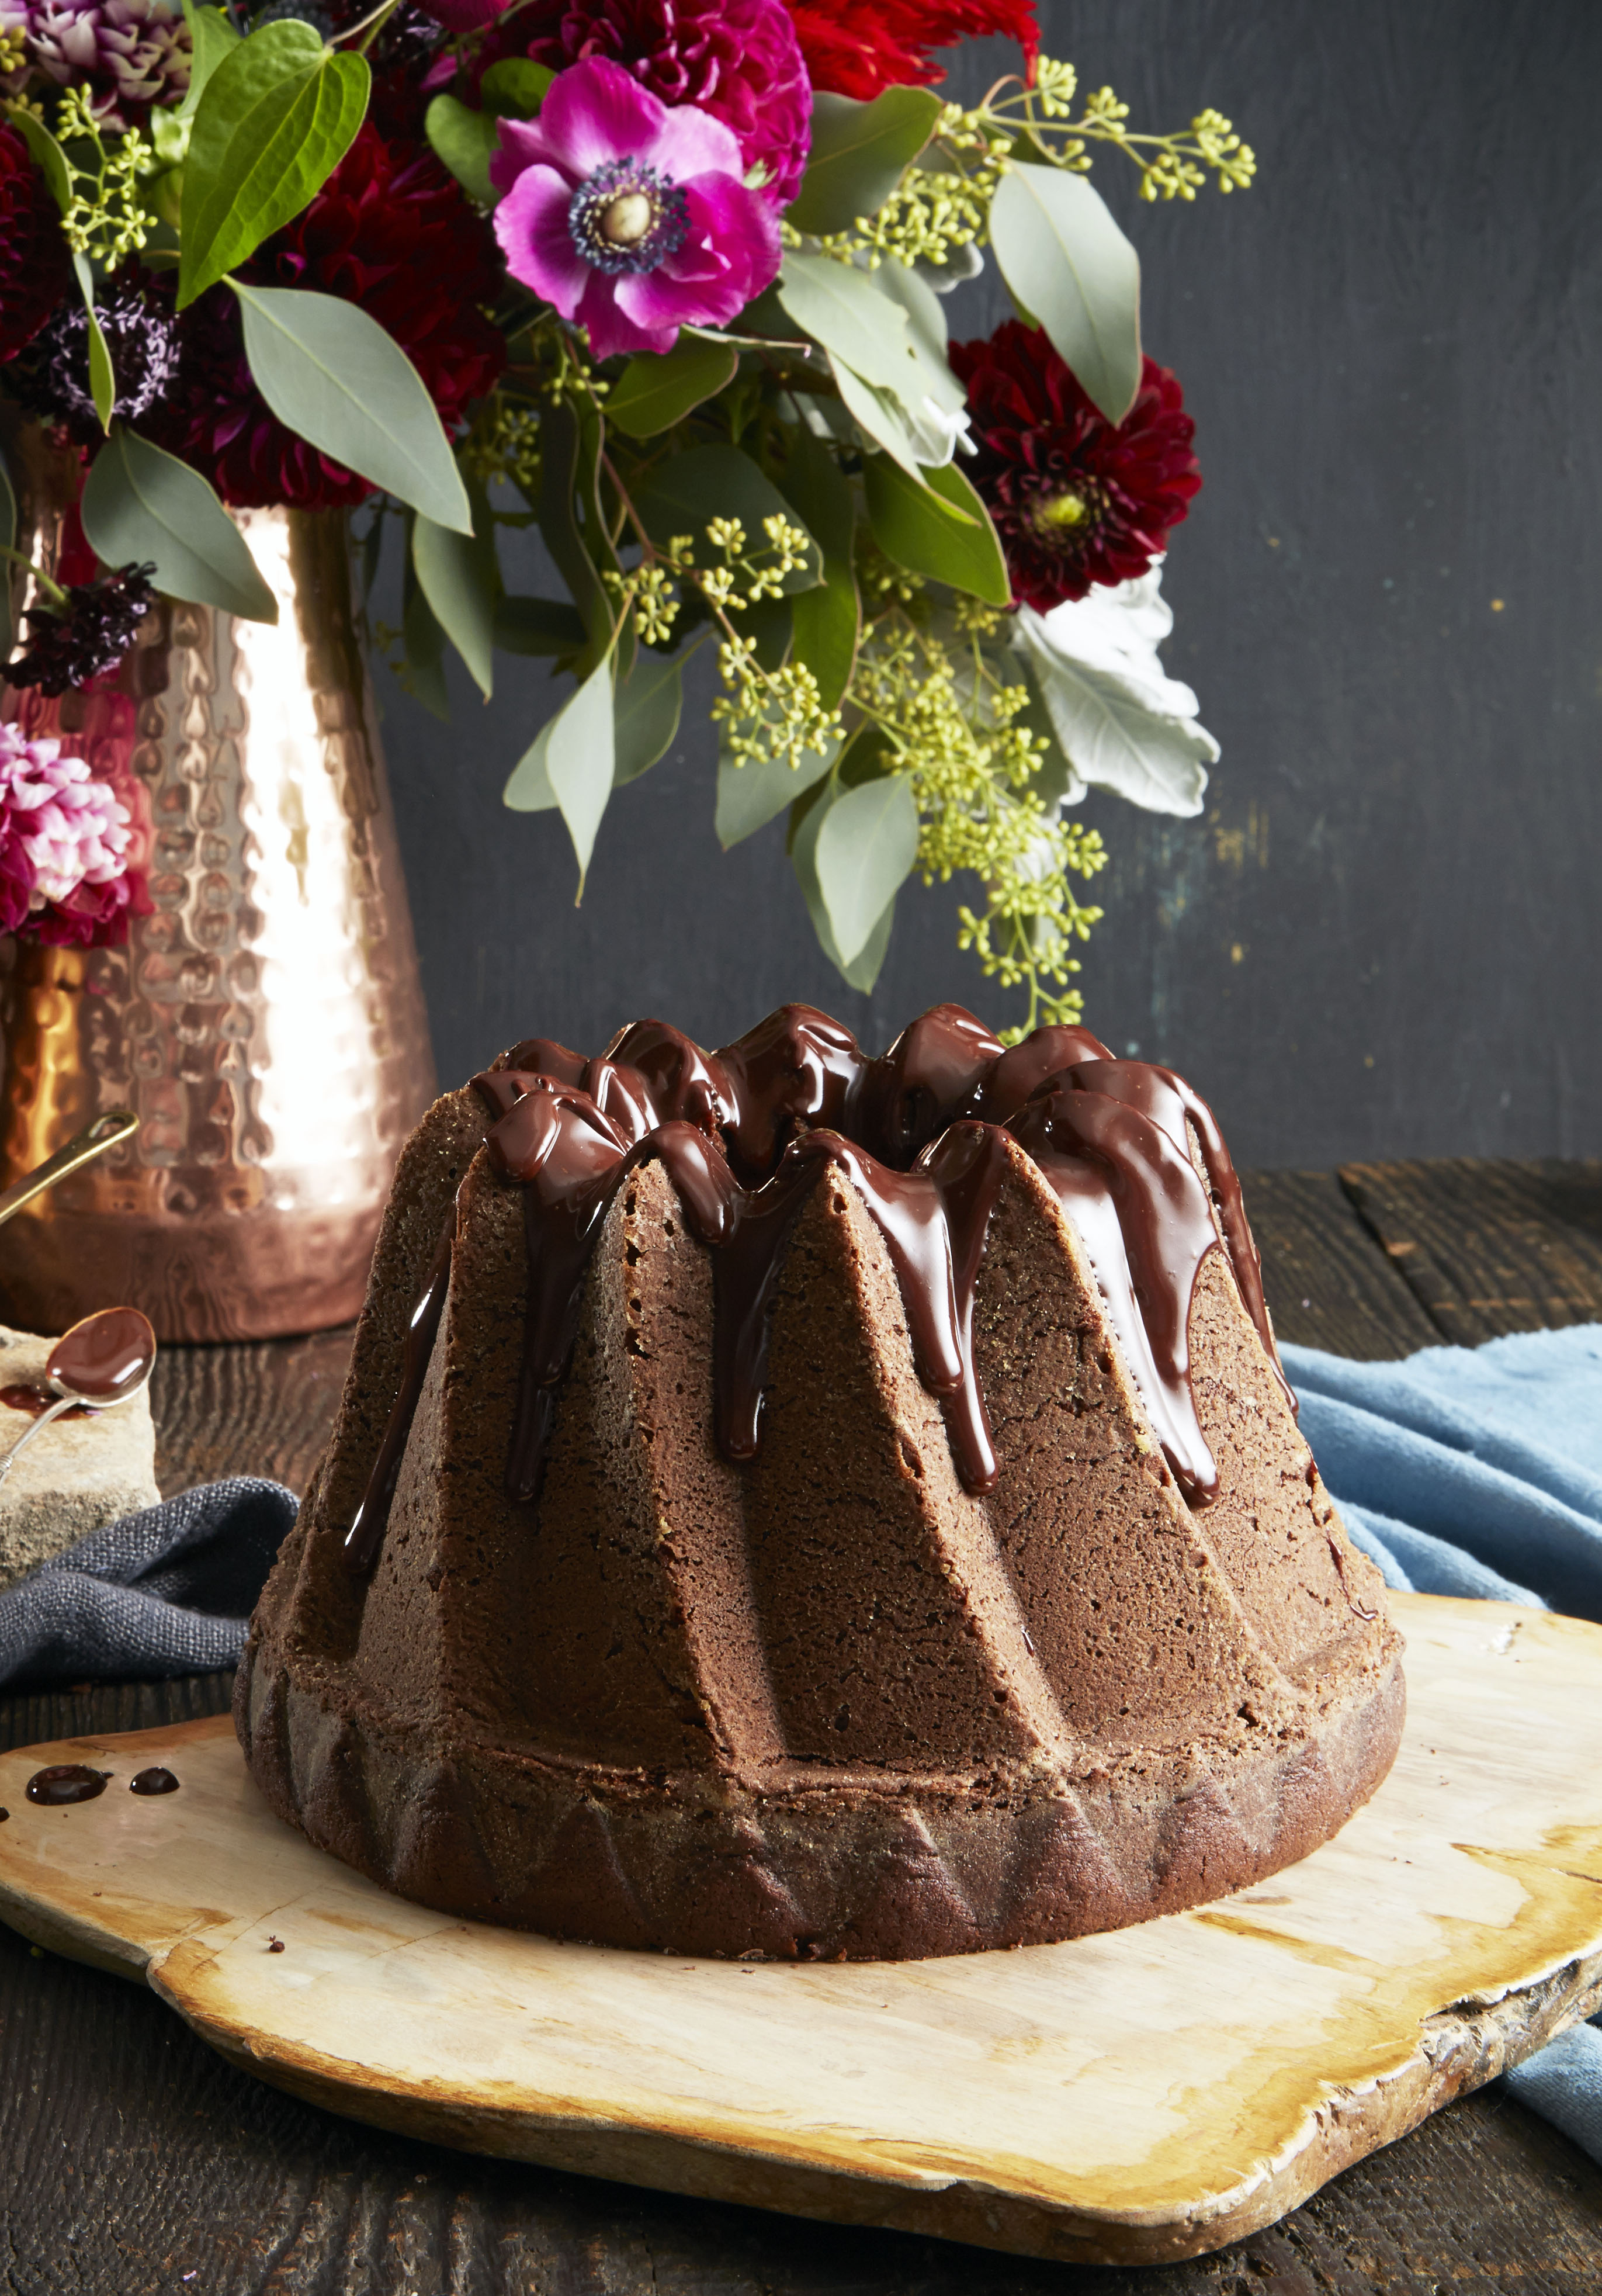 30 Best Chocolate Cake Recipes - How to Make a Chocolate Cake